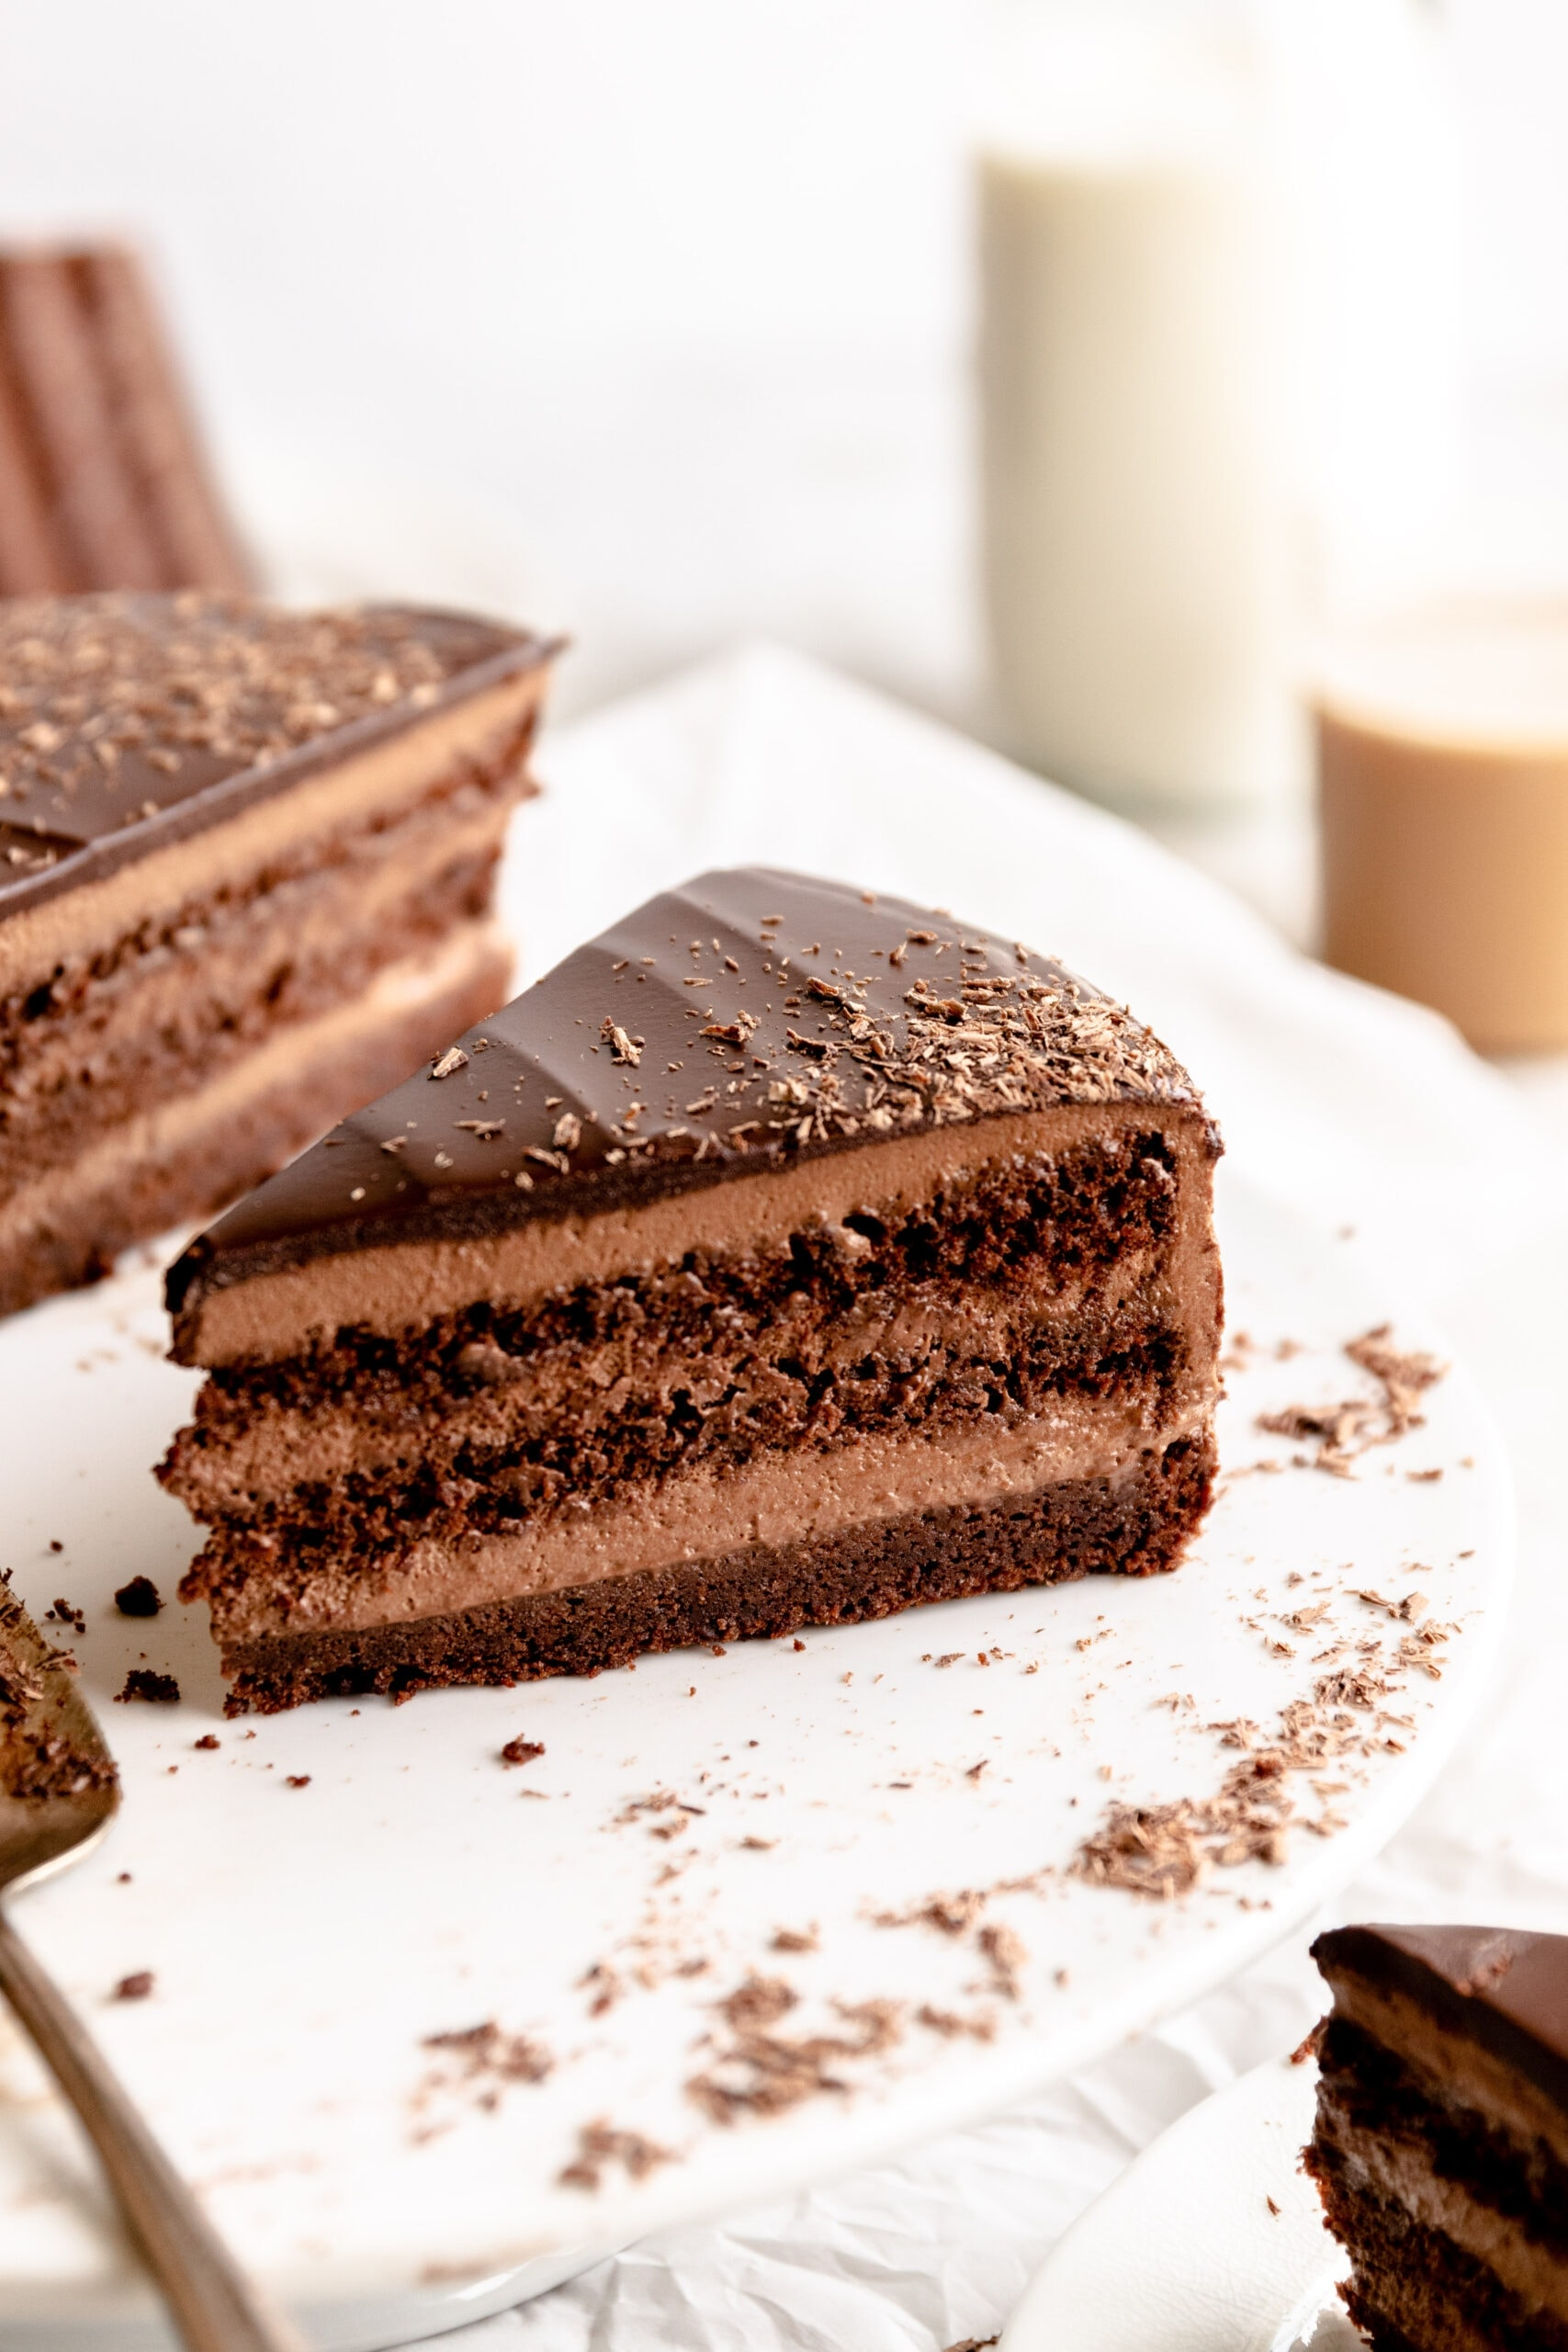 Up close image of a slice of chocolate mousse cake on a white cake stand.